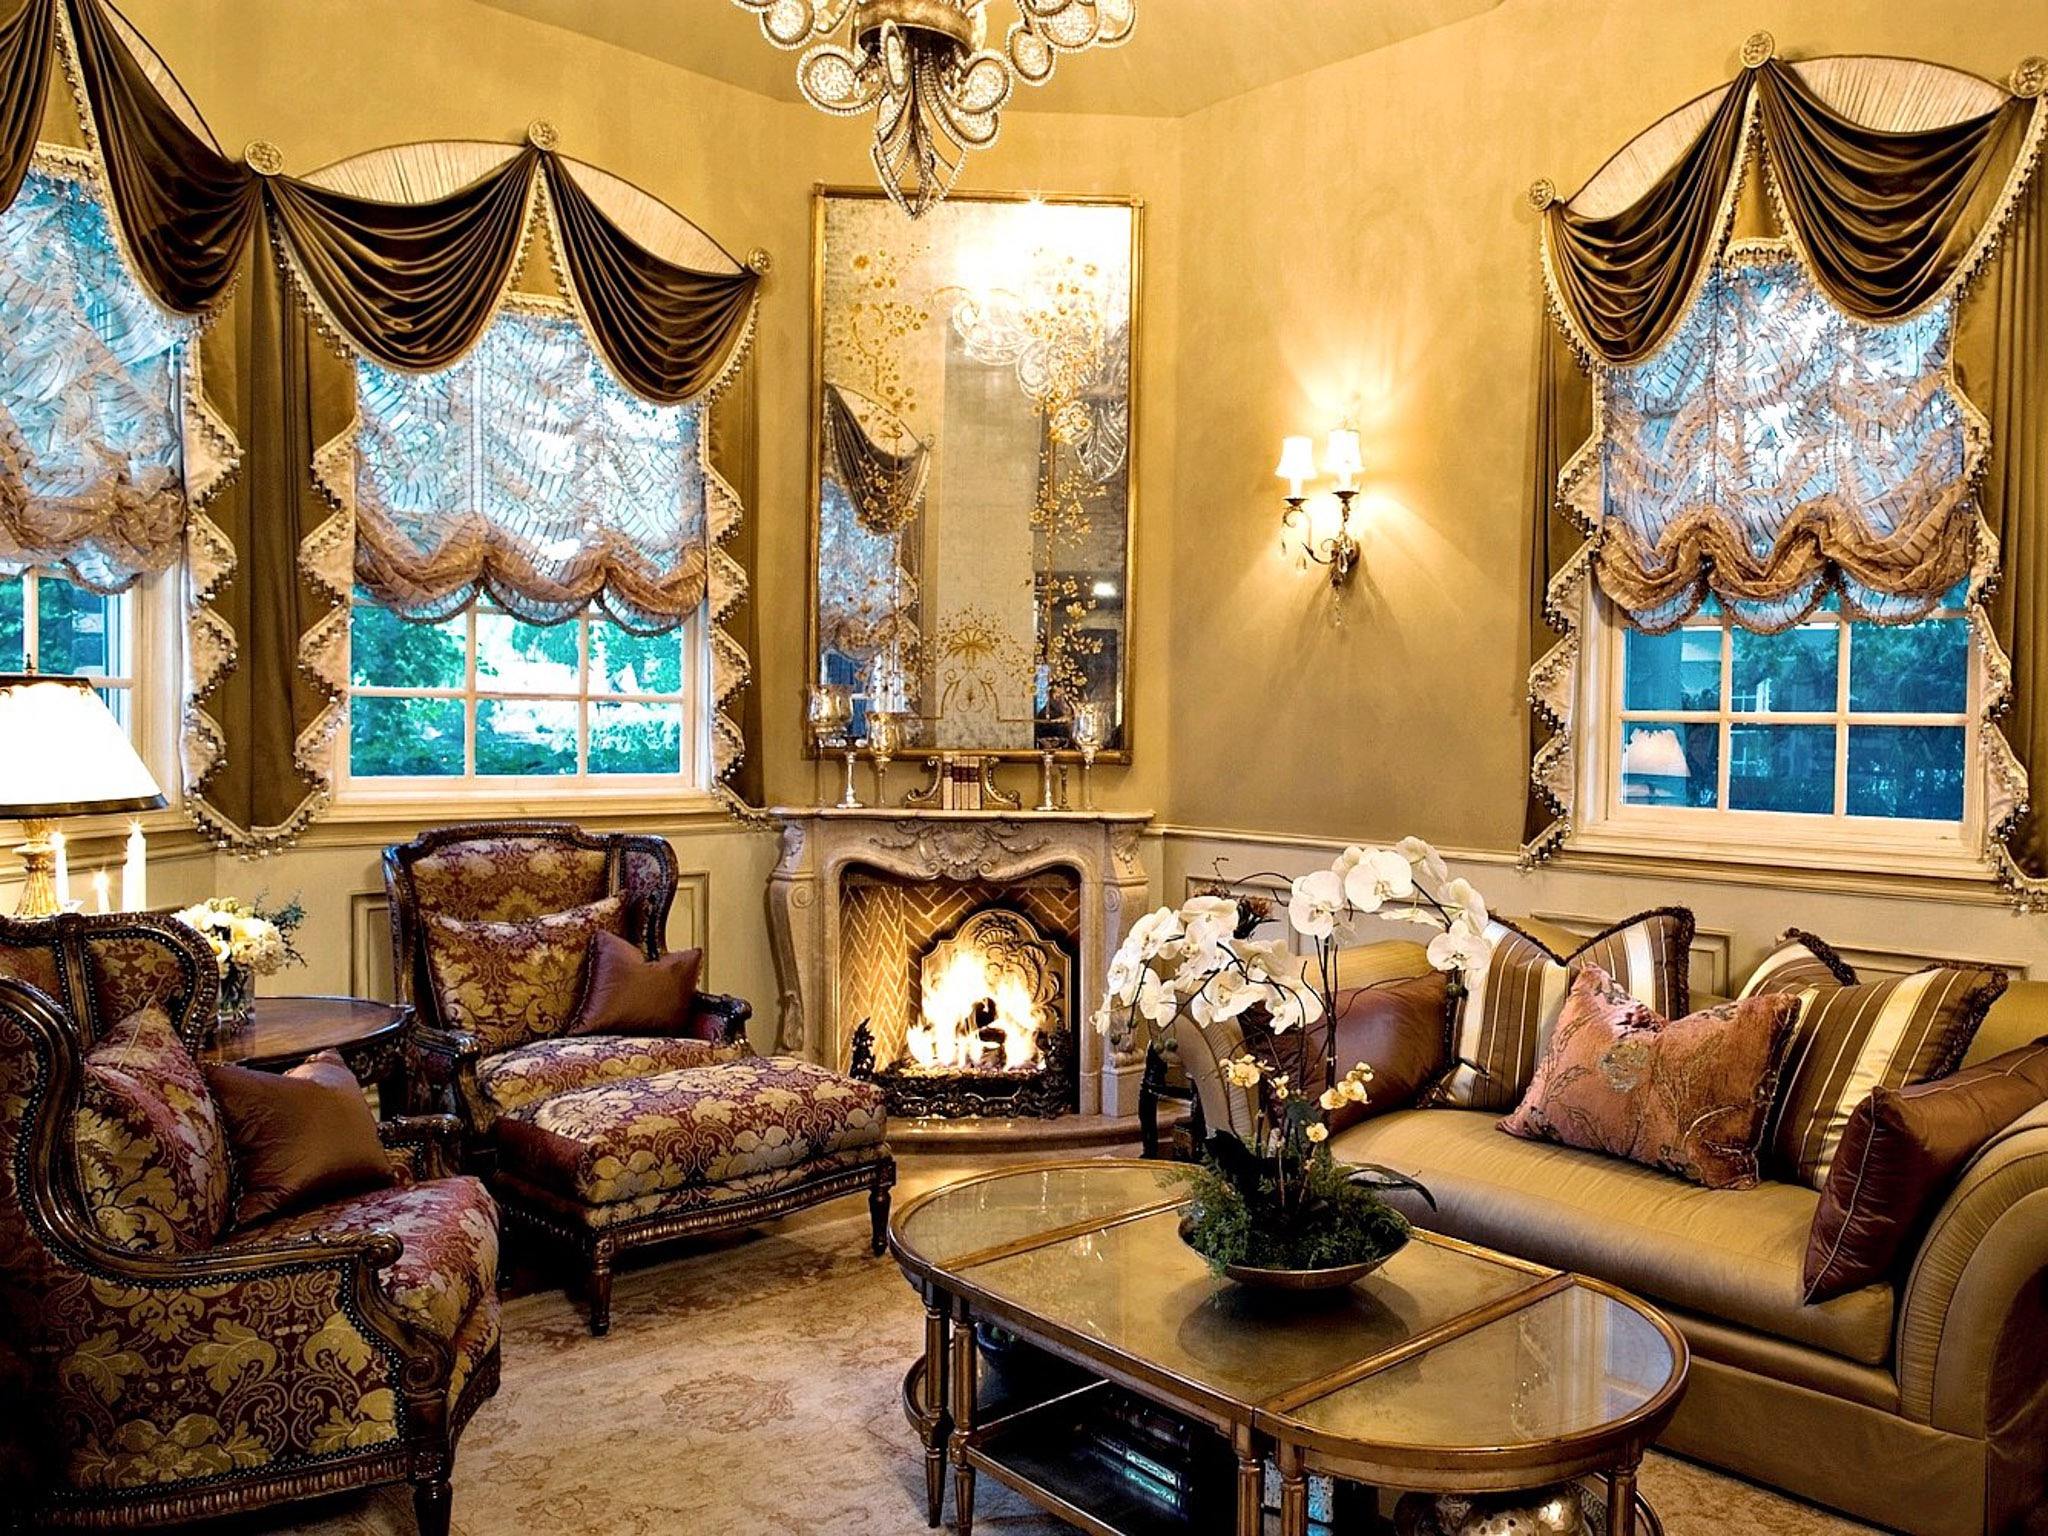 Italian Inspired Living Room Decor With Gold Love Seat And Burgundy Damask Wingback Chairs Surround An Oval Coffee Table (Image 14 of 20)